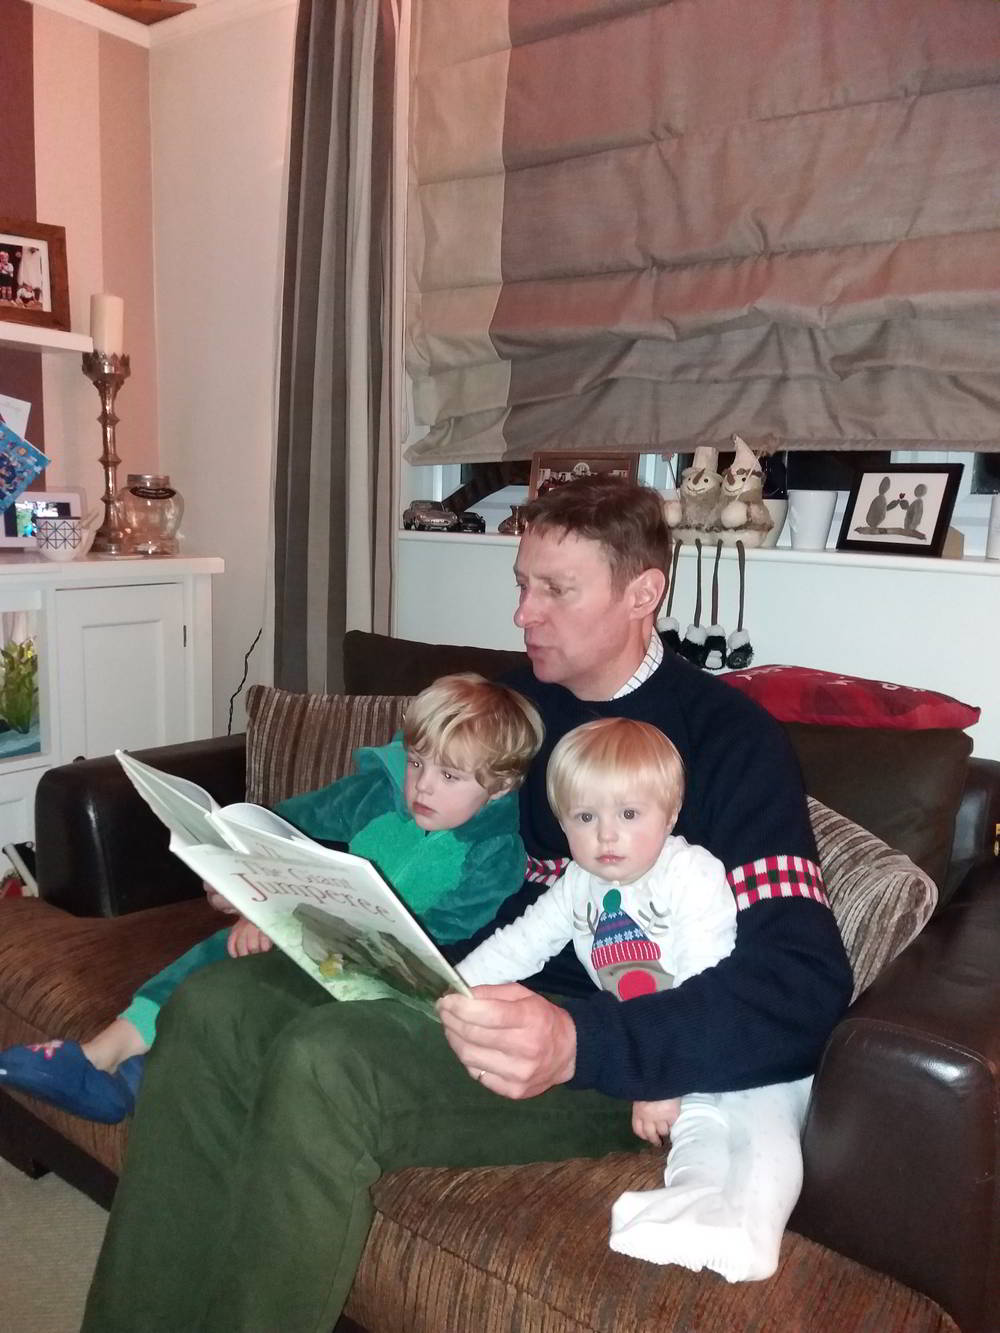 Archie Reading Bedtime Story To Wee Archie And William